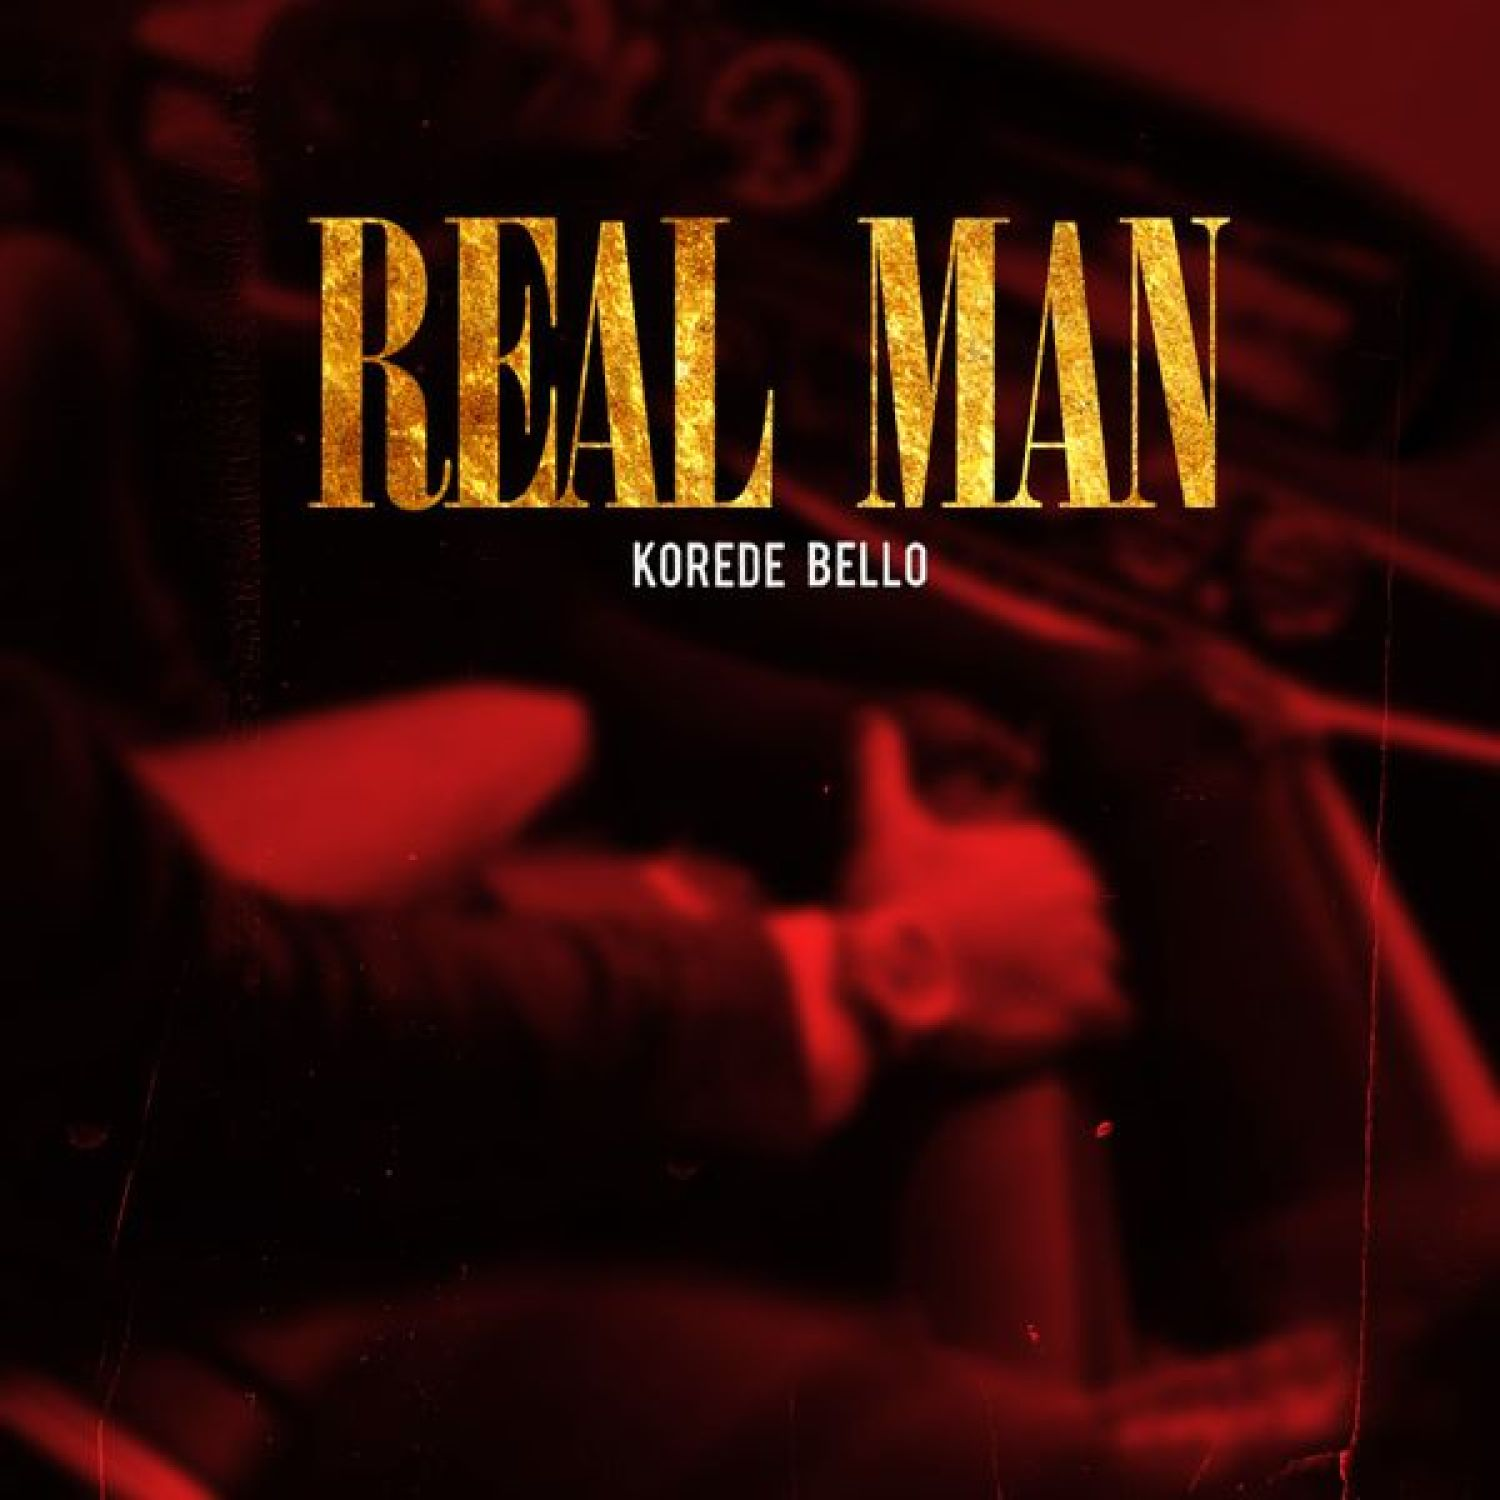 DOWNLOAD MP3: Korede Bello – Real Man(Free MP3) AUDIO 320kbps